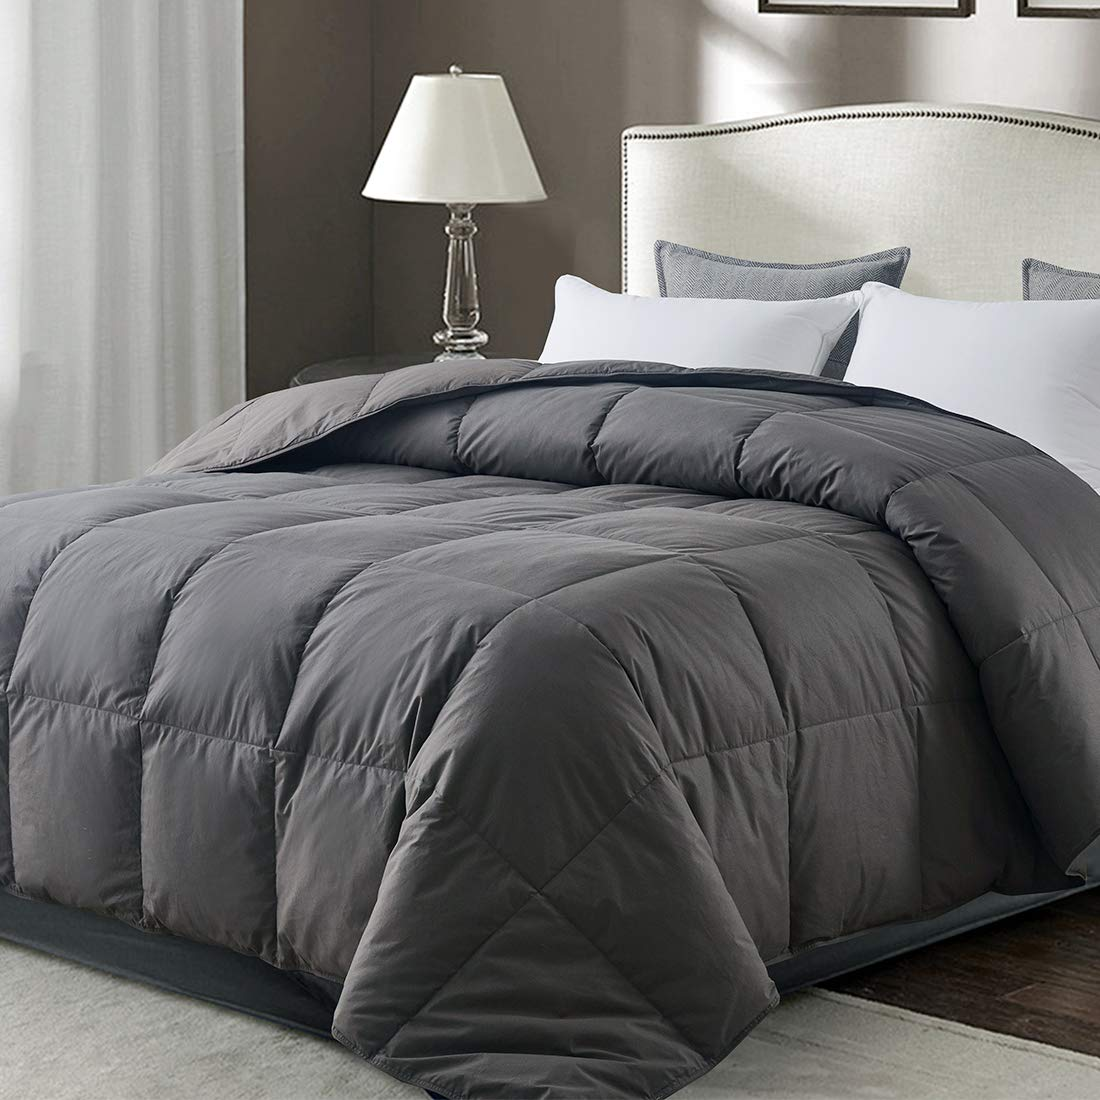 Whatsbedding Gray Goose Duck Down Comforter 100 Cotton Feather Comforter Lightweight Duvet Insert Twin 64x88